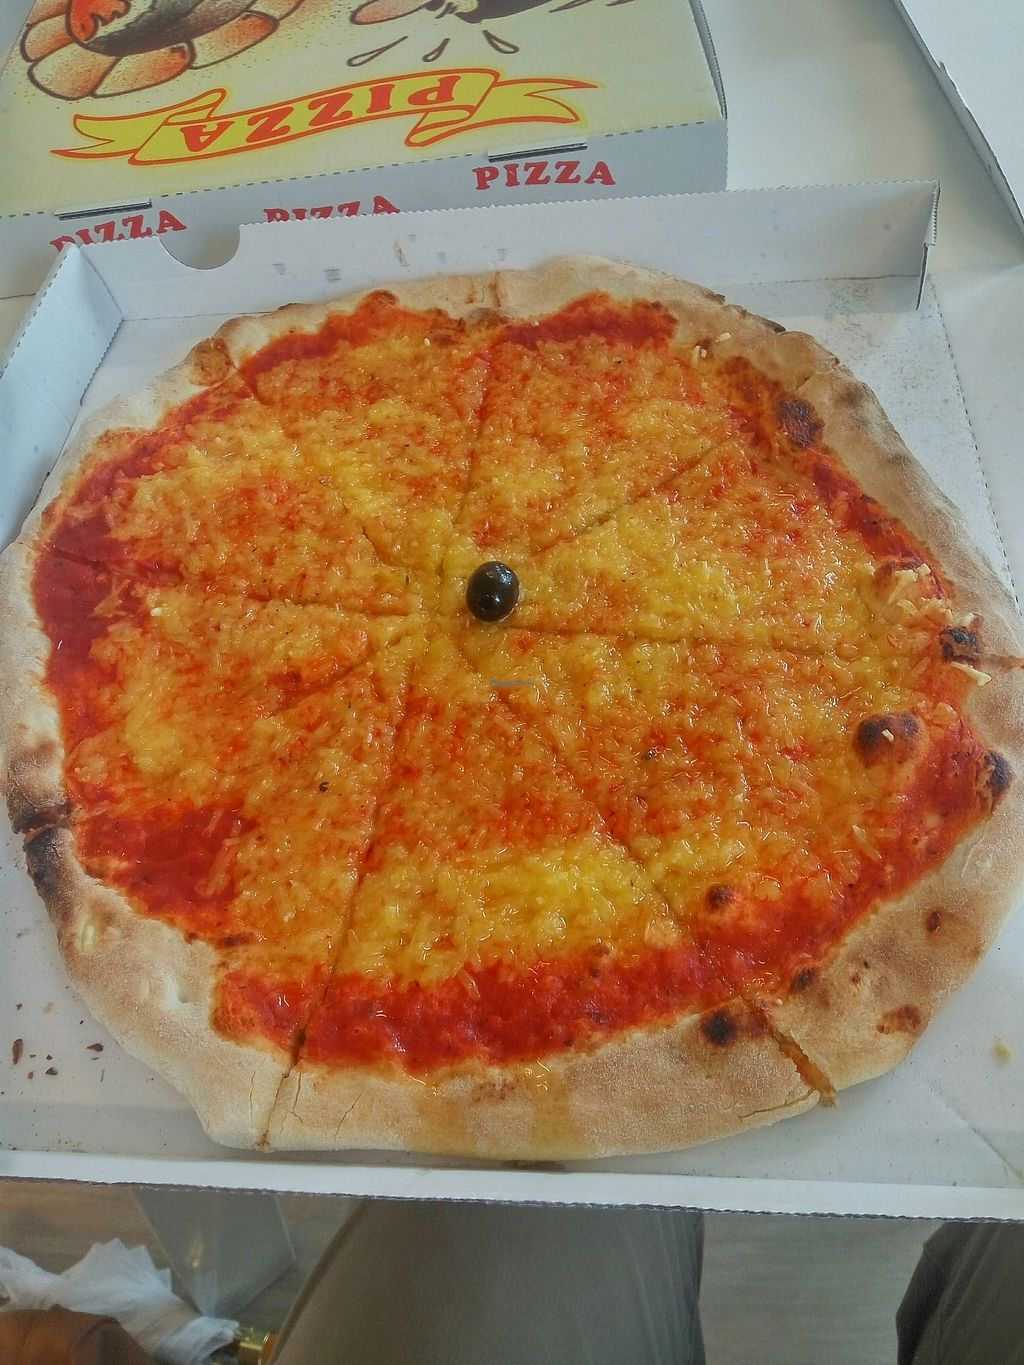 """Photo of Ai 6 Angoli  by <a href=""""/members/profile/victord"""">victord</a> <br/>vegan pizza <br/> January 14, 2018  - <a href='/contact/abuse/image/74783/346460'>Report</a>"""